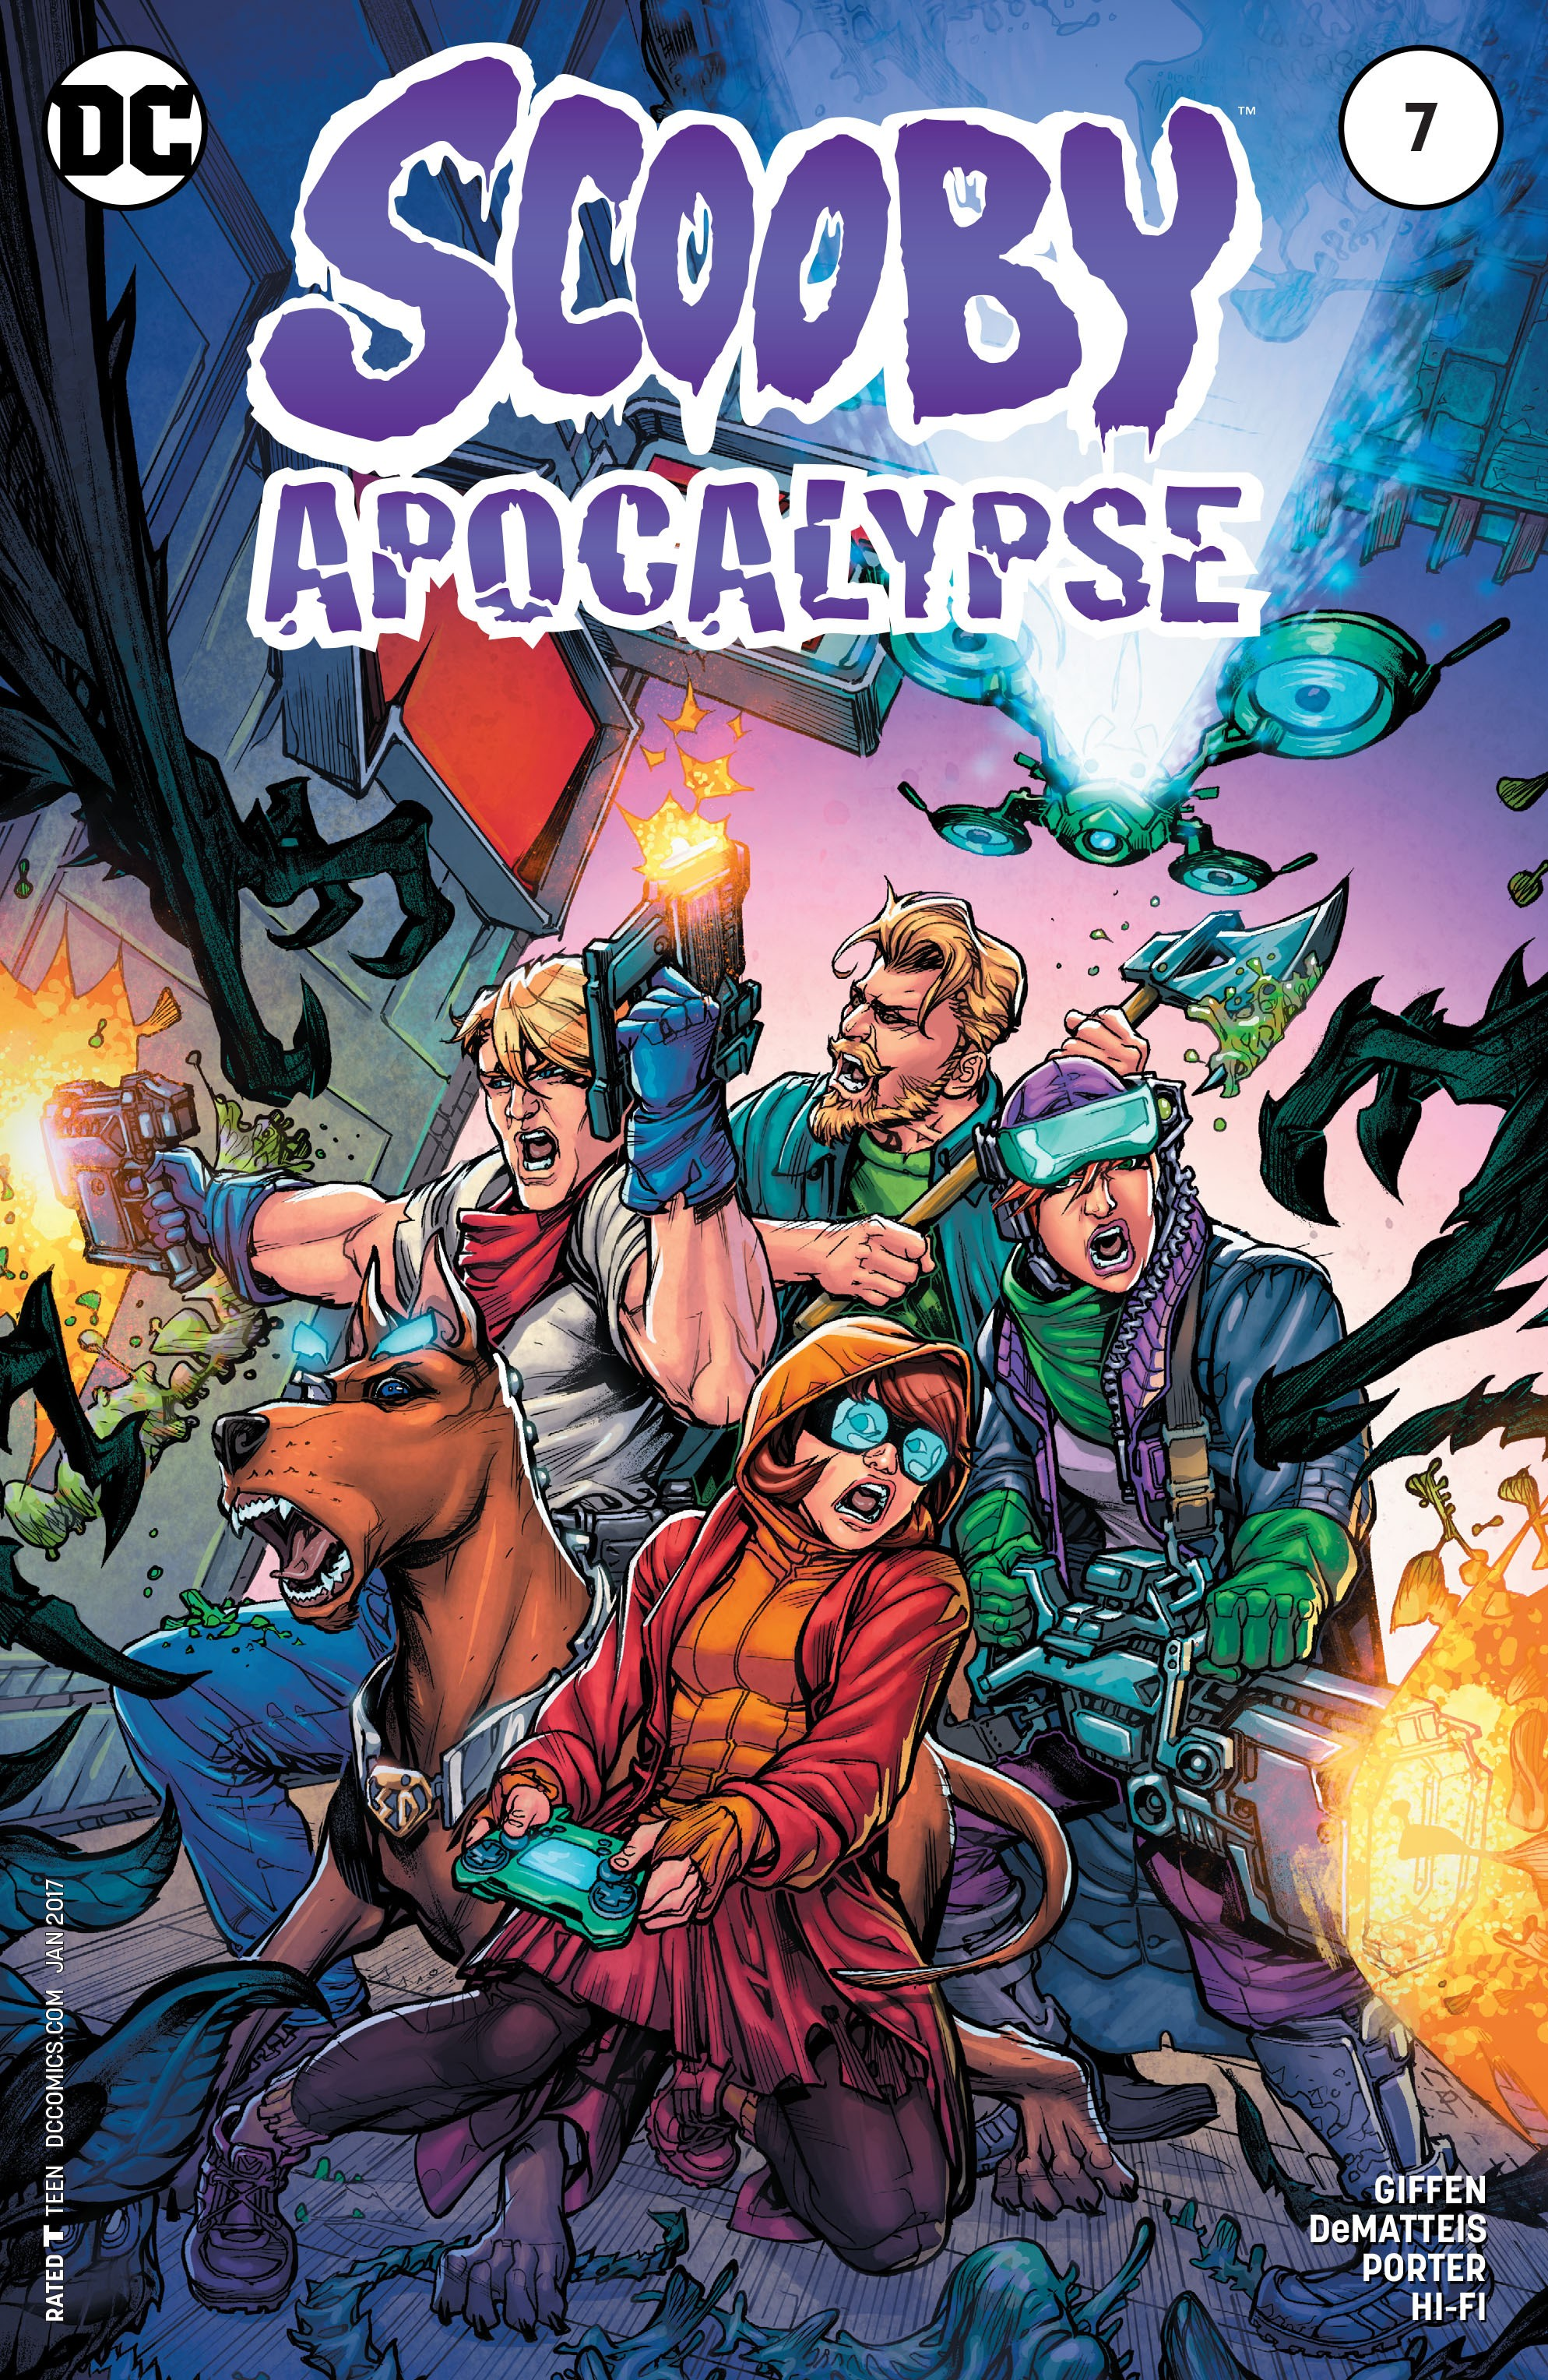 Read online Scooby Apocalypse comic -  Issue #7 - 1